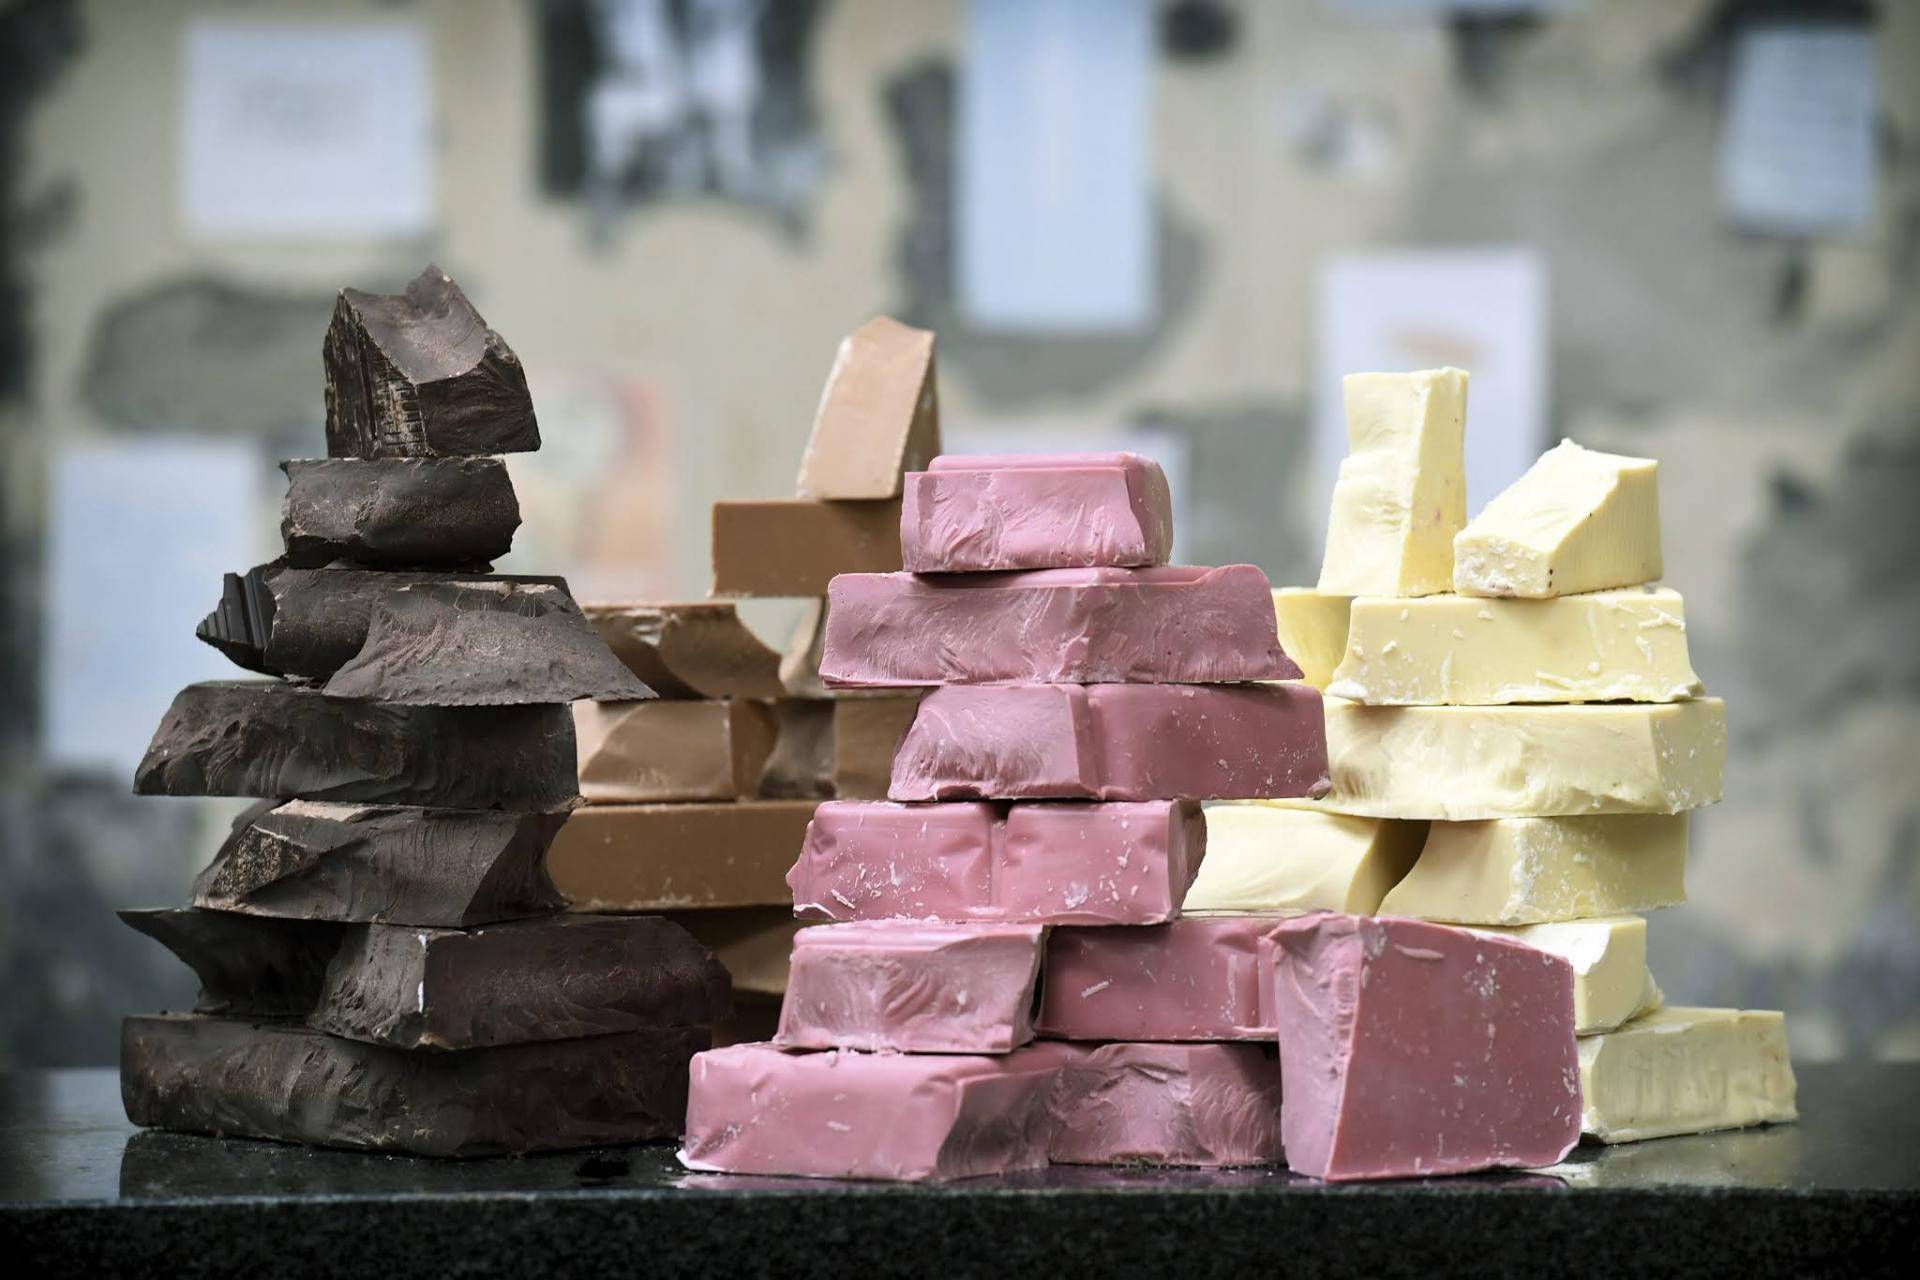 News and stories - Barry Callebaut